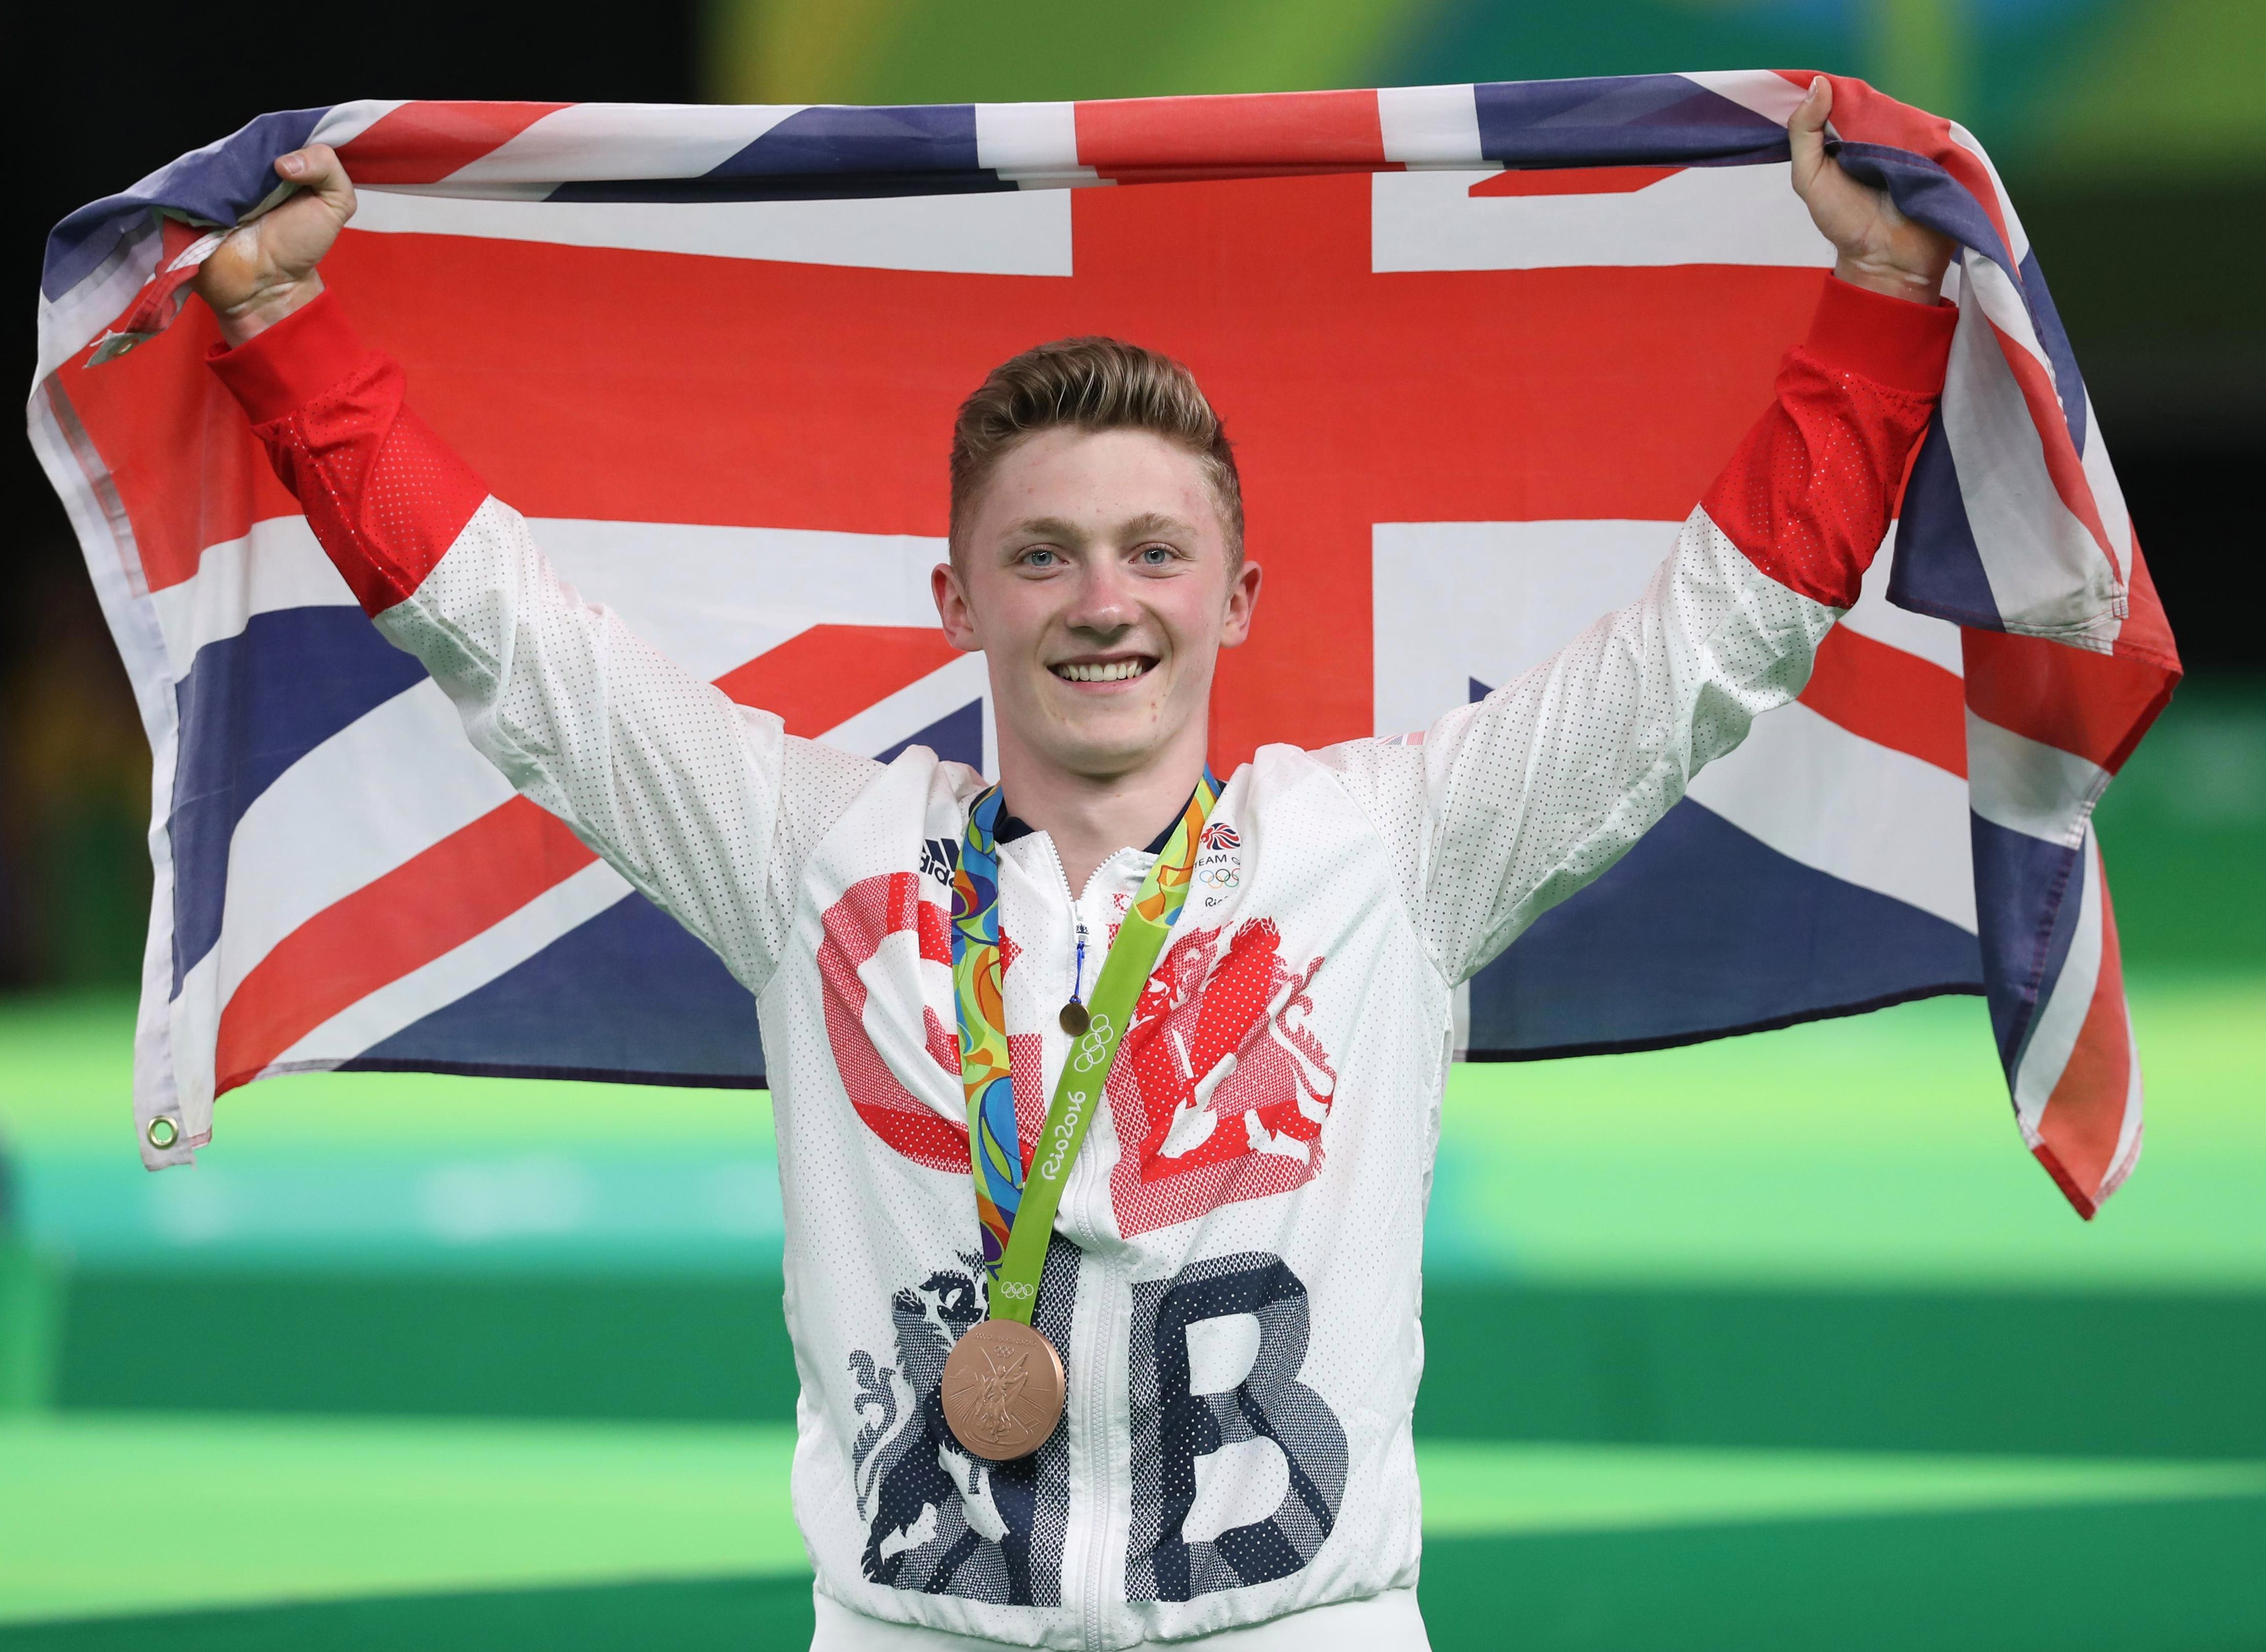 Nile Wilson would back himself to beat fellow British sports stars in an event like Superstars